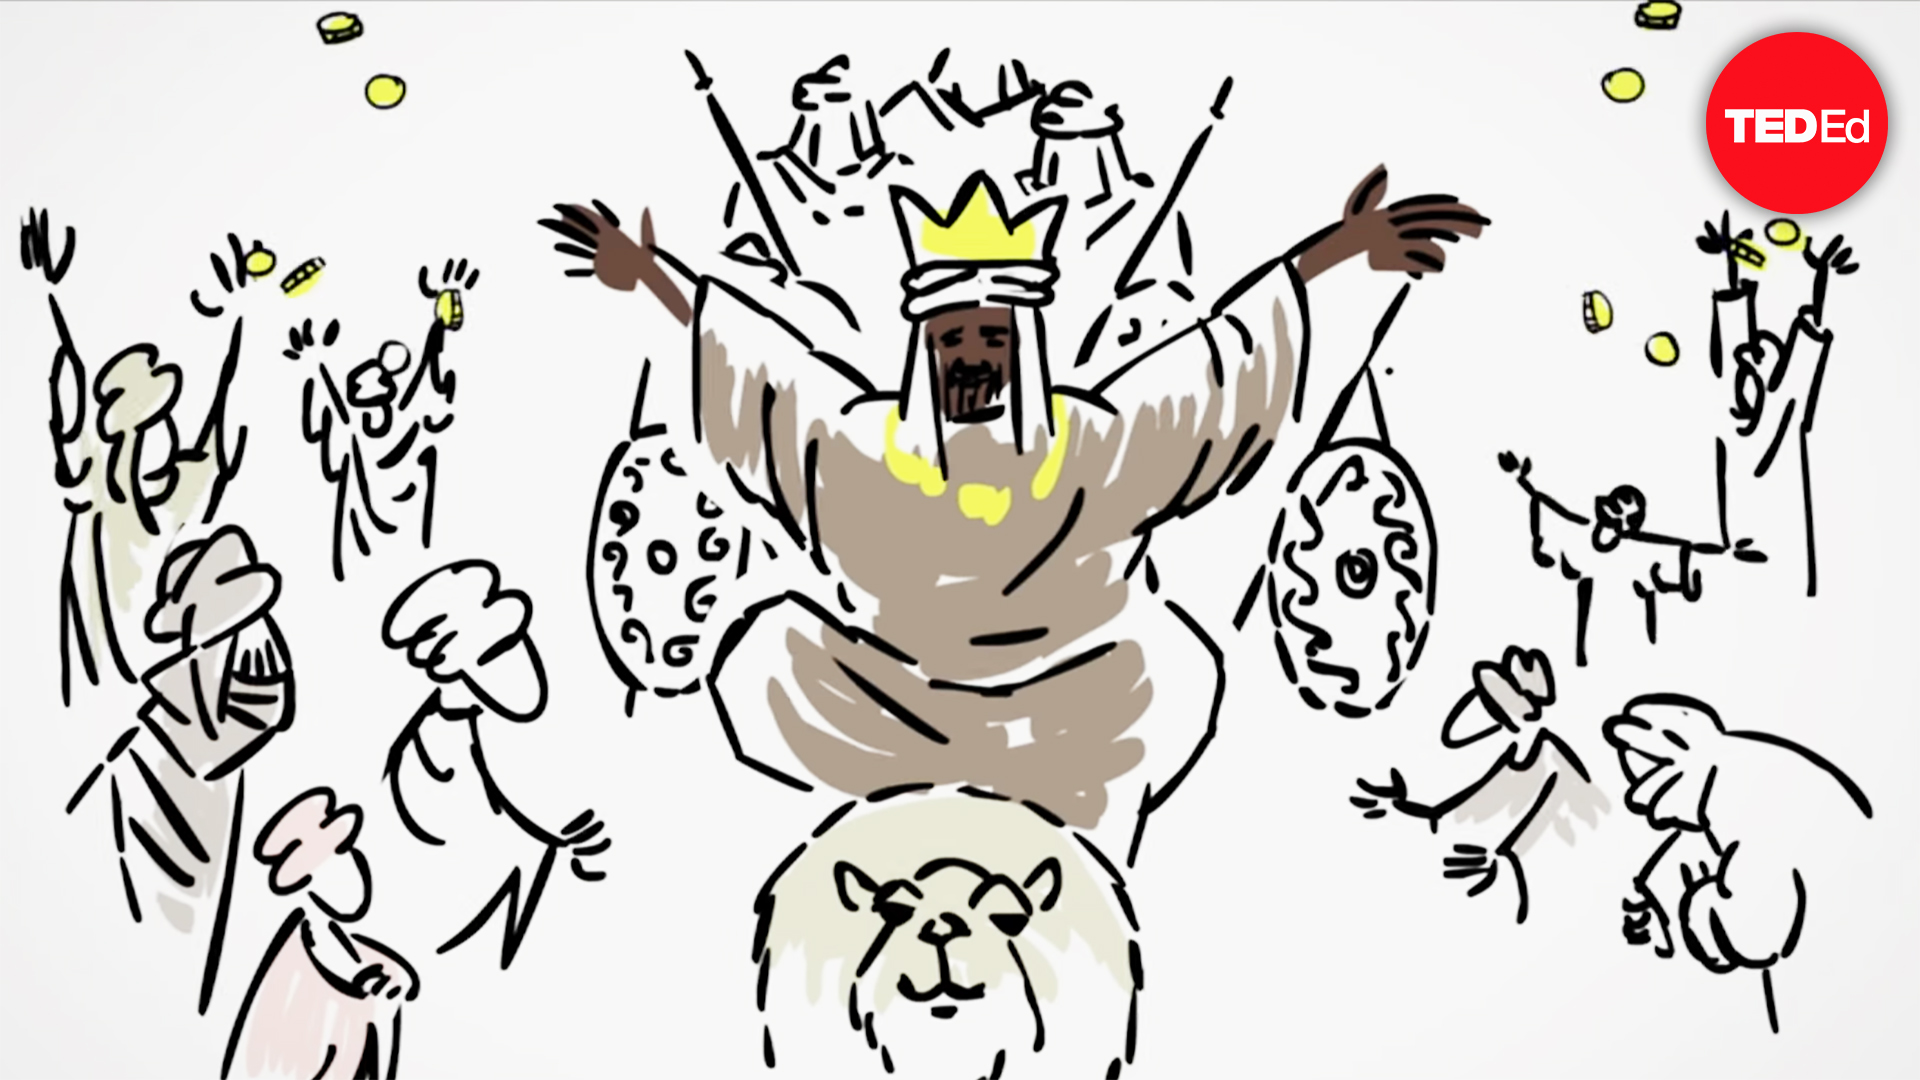 Mansa musa clipart image royalty free stock Mansa Musa, one of the wealthiest people who ever lived image royalty free stock